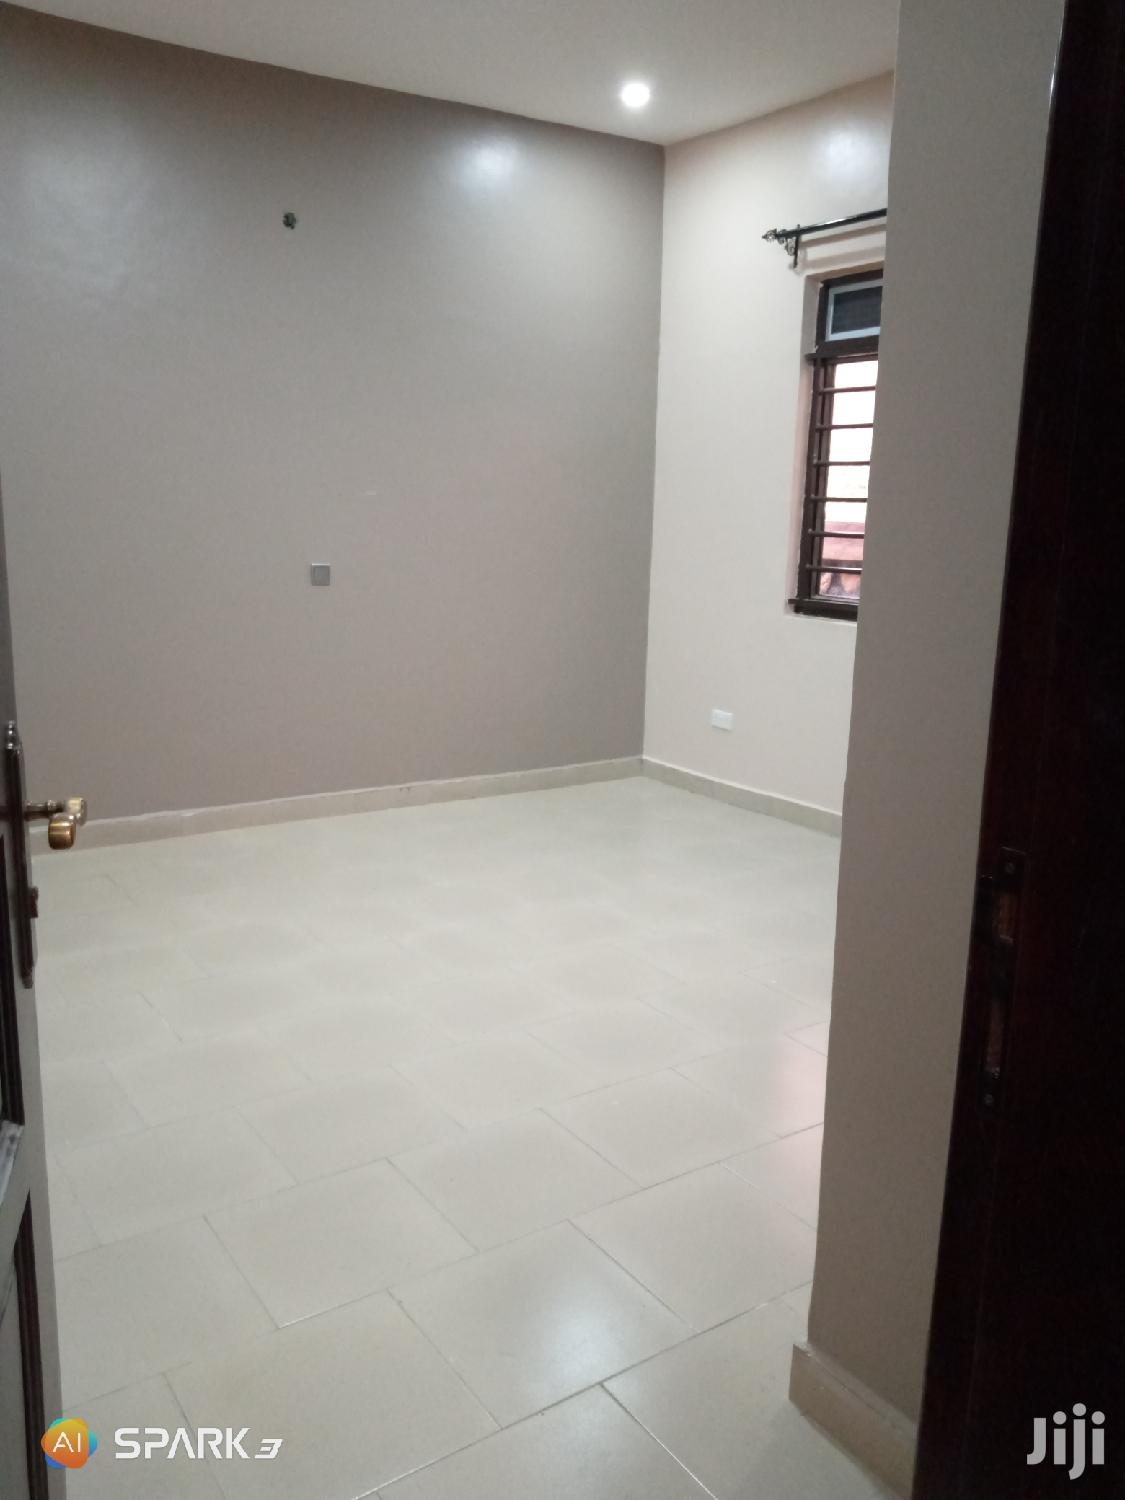 Double Rooms for Rent in Kireka-Namugongo Rd. | Houses & Apartments For Rent for sale in Wakiso, Central Region, Uganda